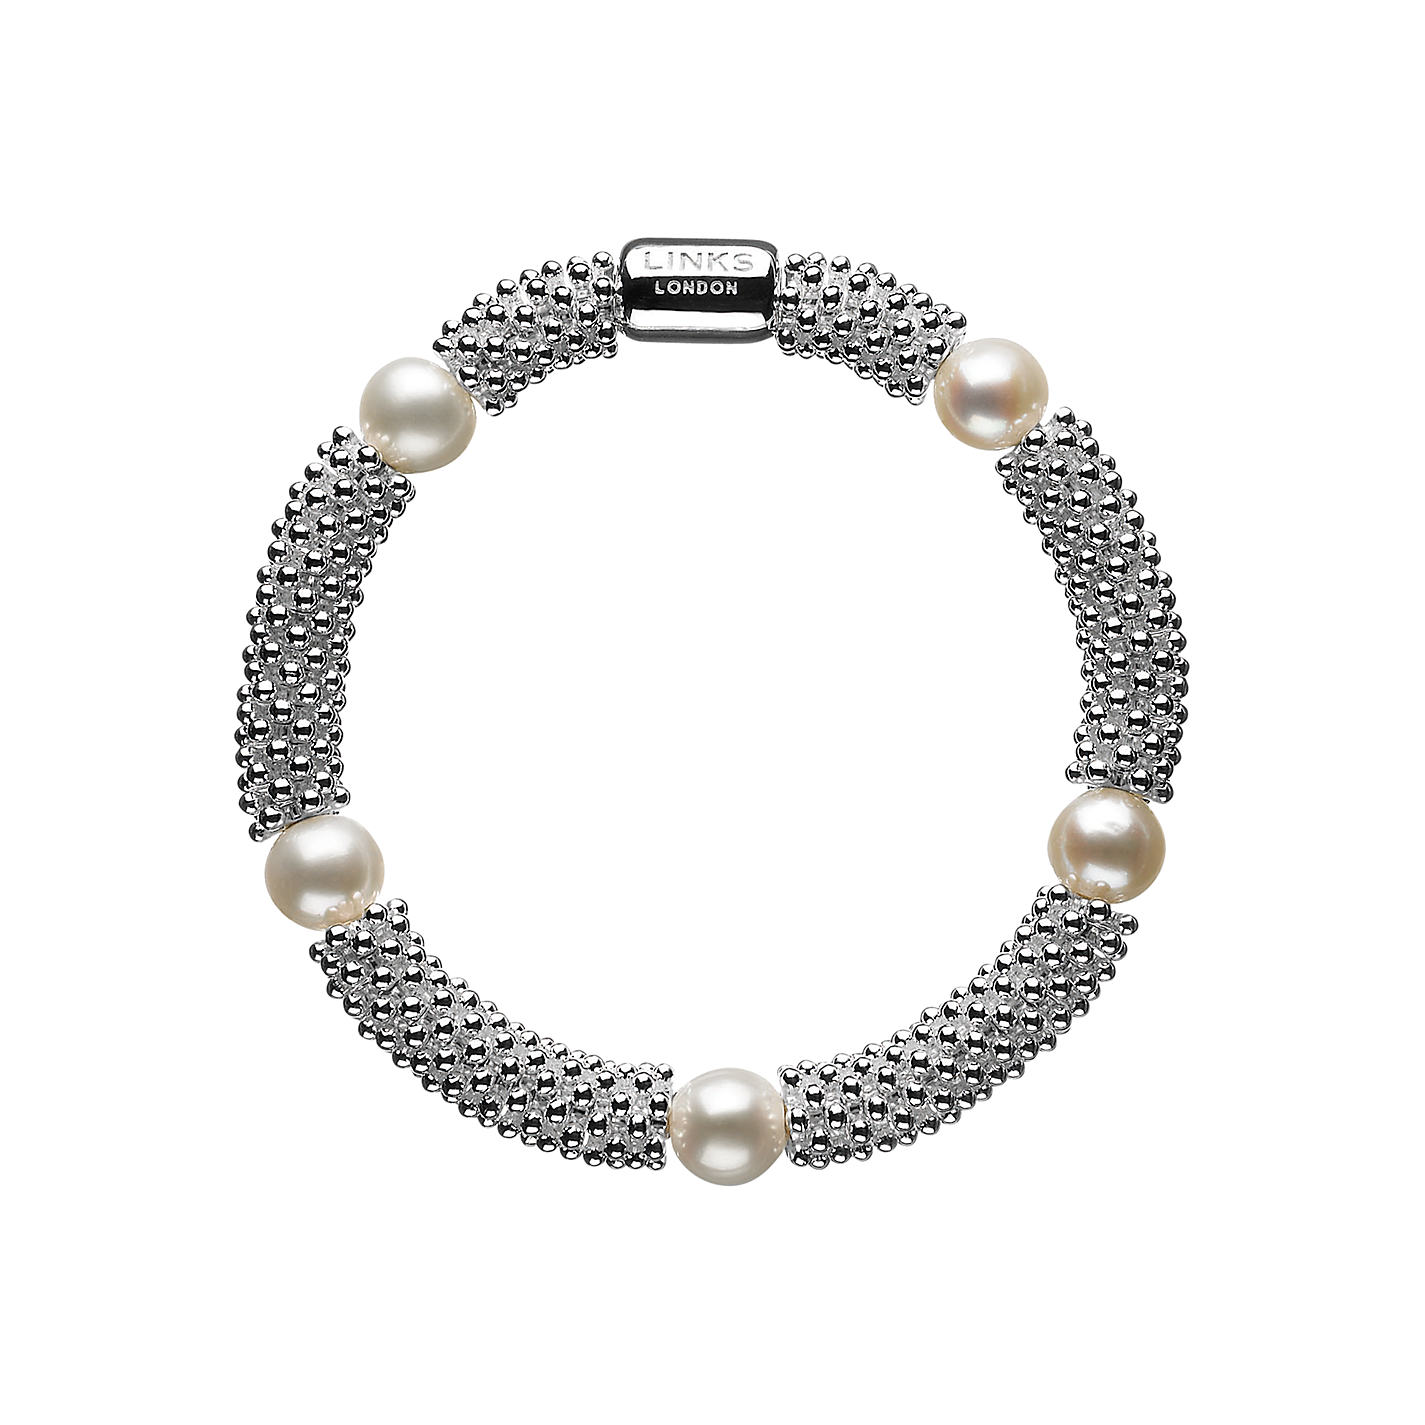 Related image with marisol silver pearls black models picture